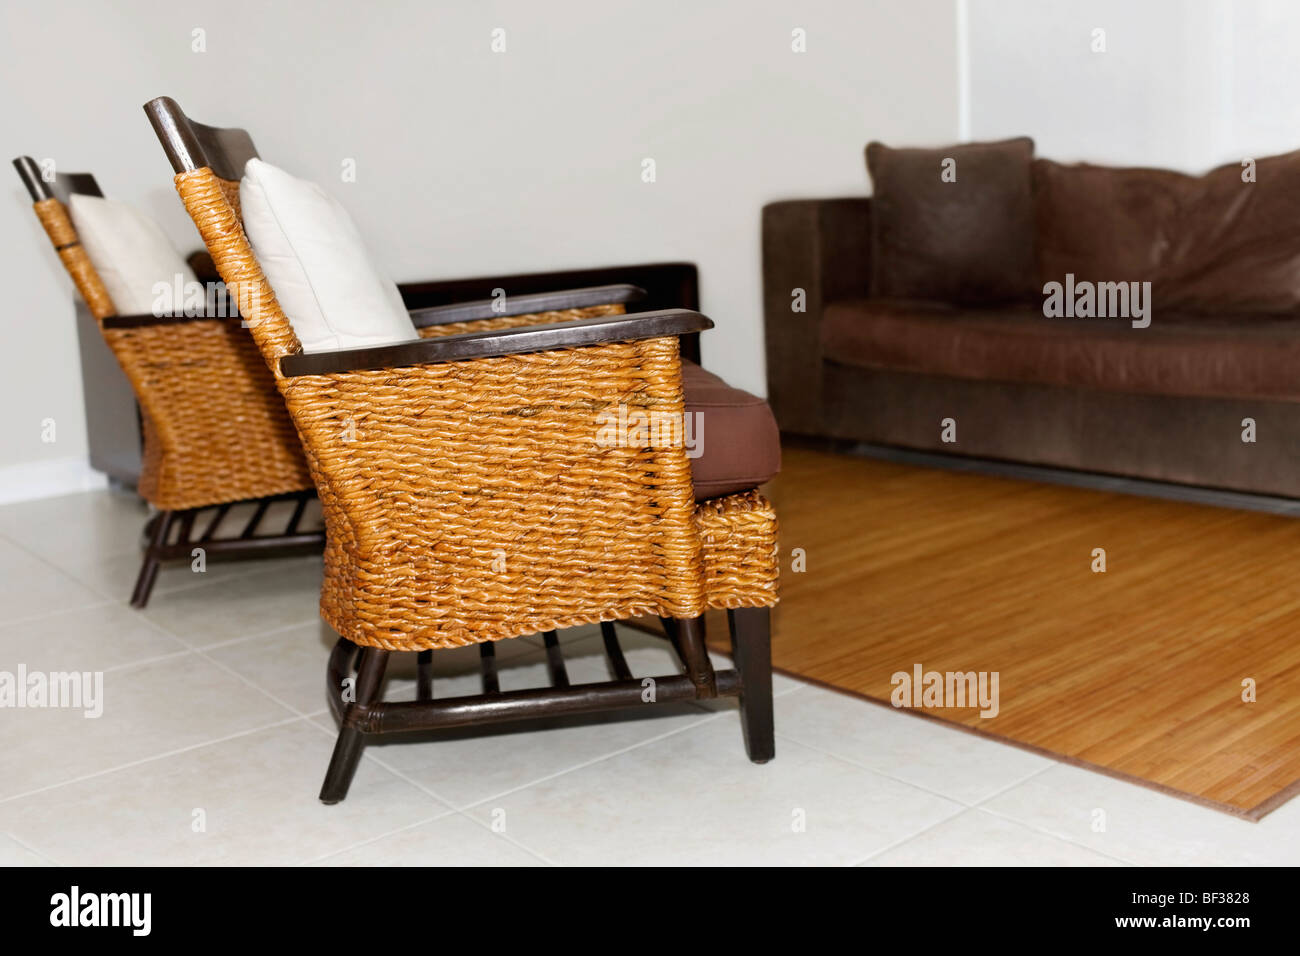 Caning Stock Photos & Caning Stock Images - Page 2 - Alamy